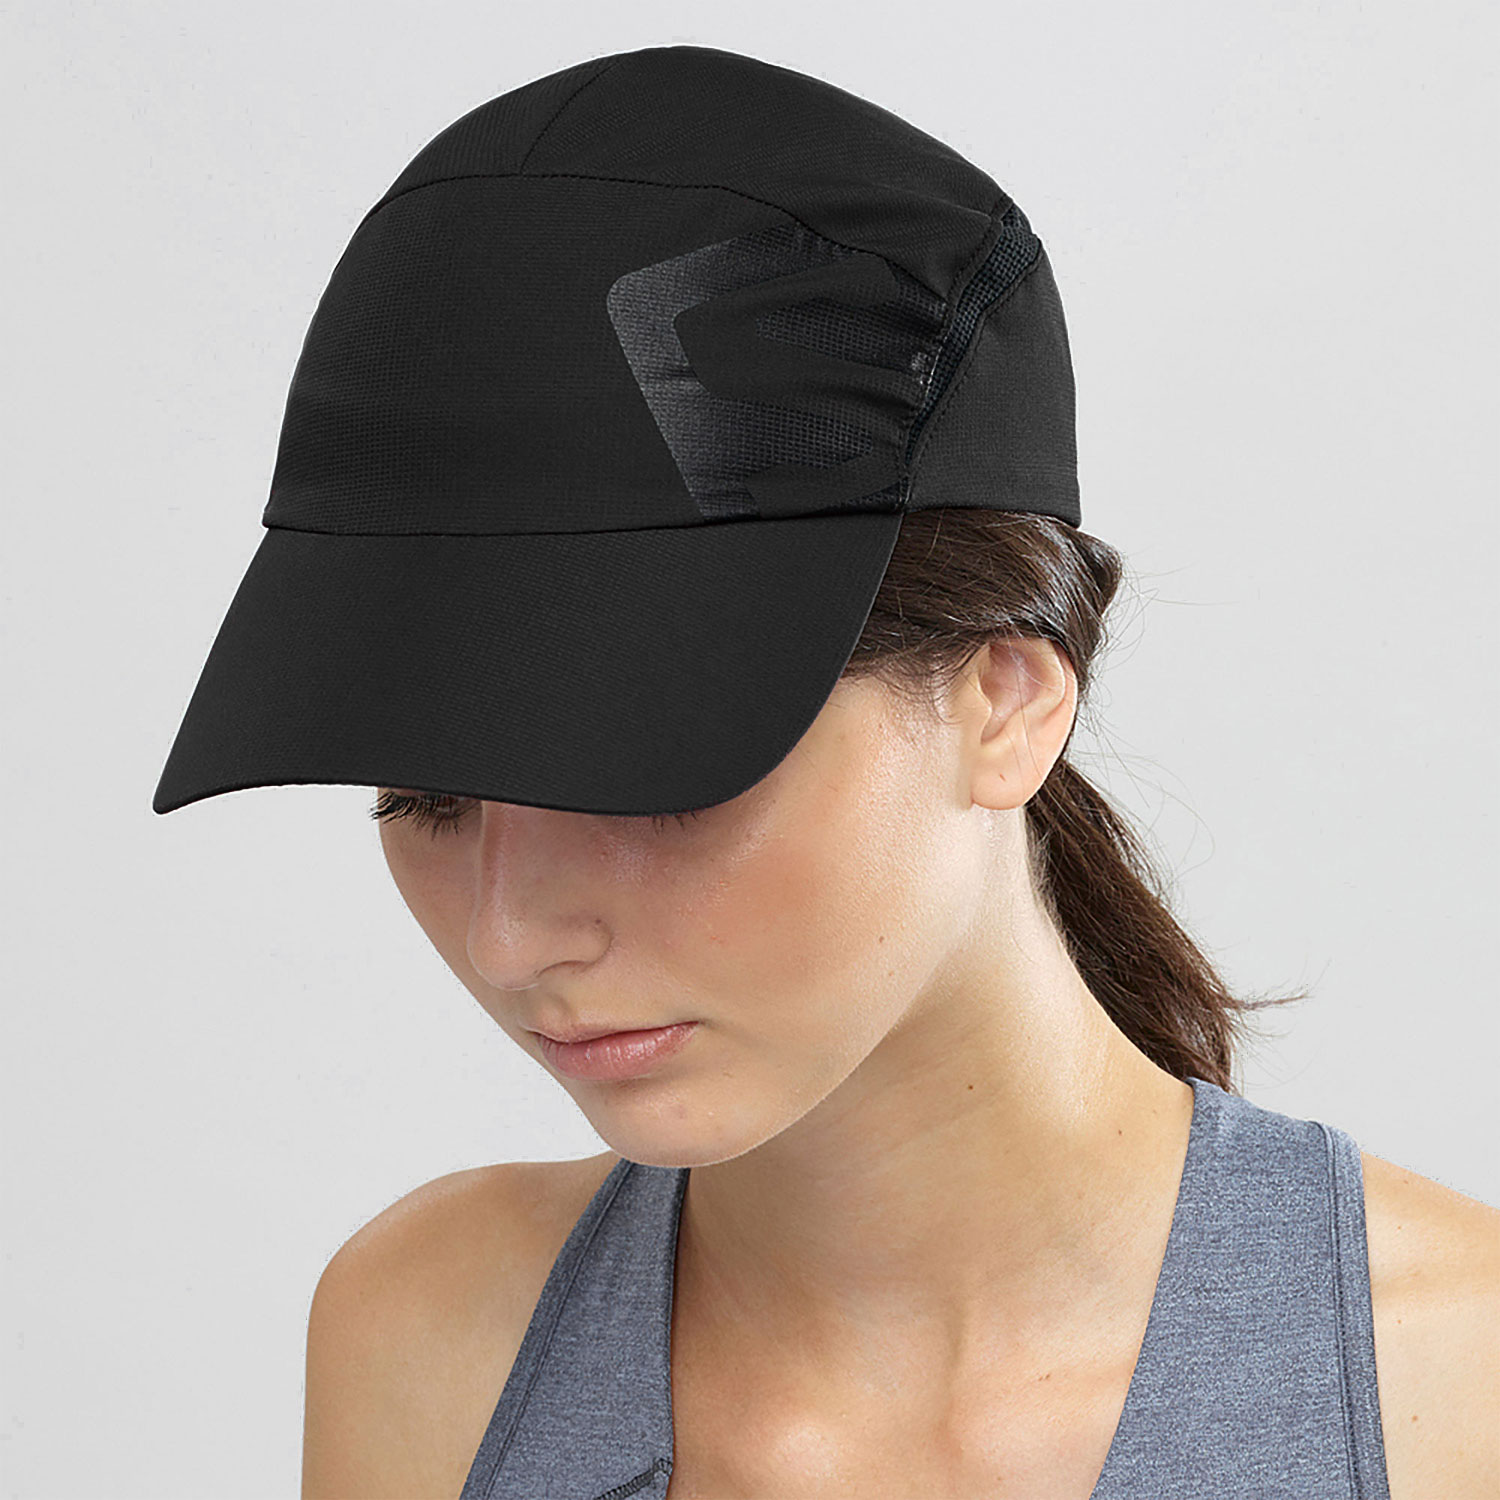 Salomon XA Cap - Black/Shiny Black